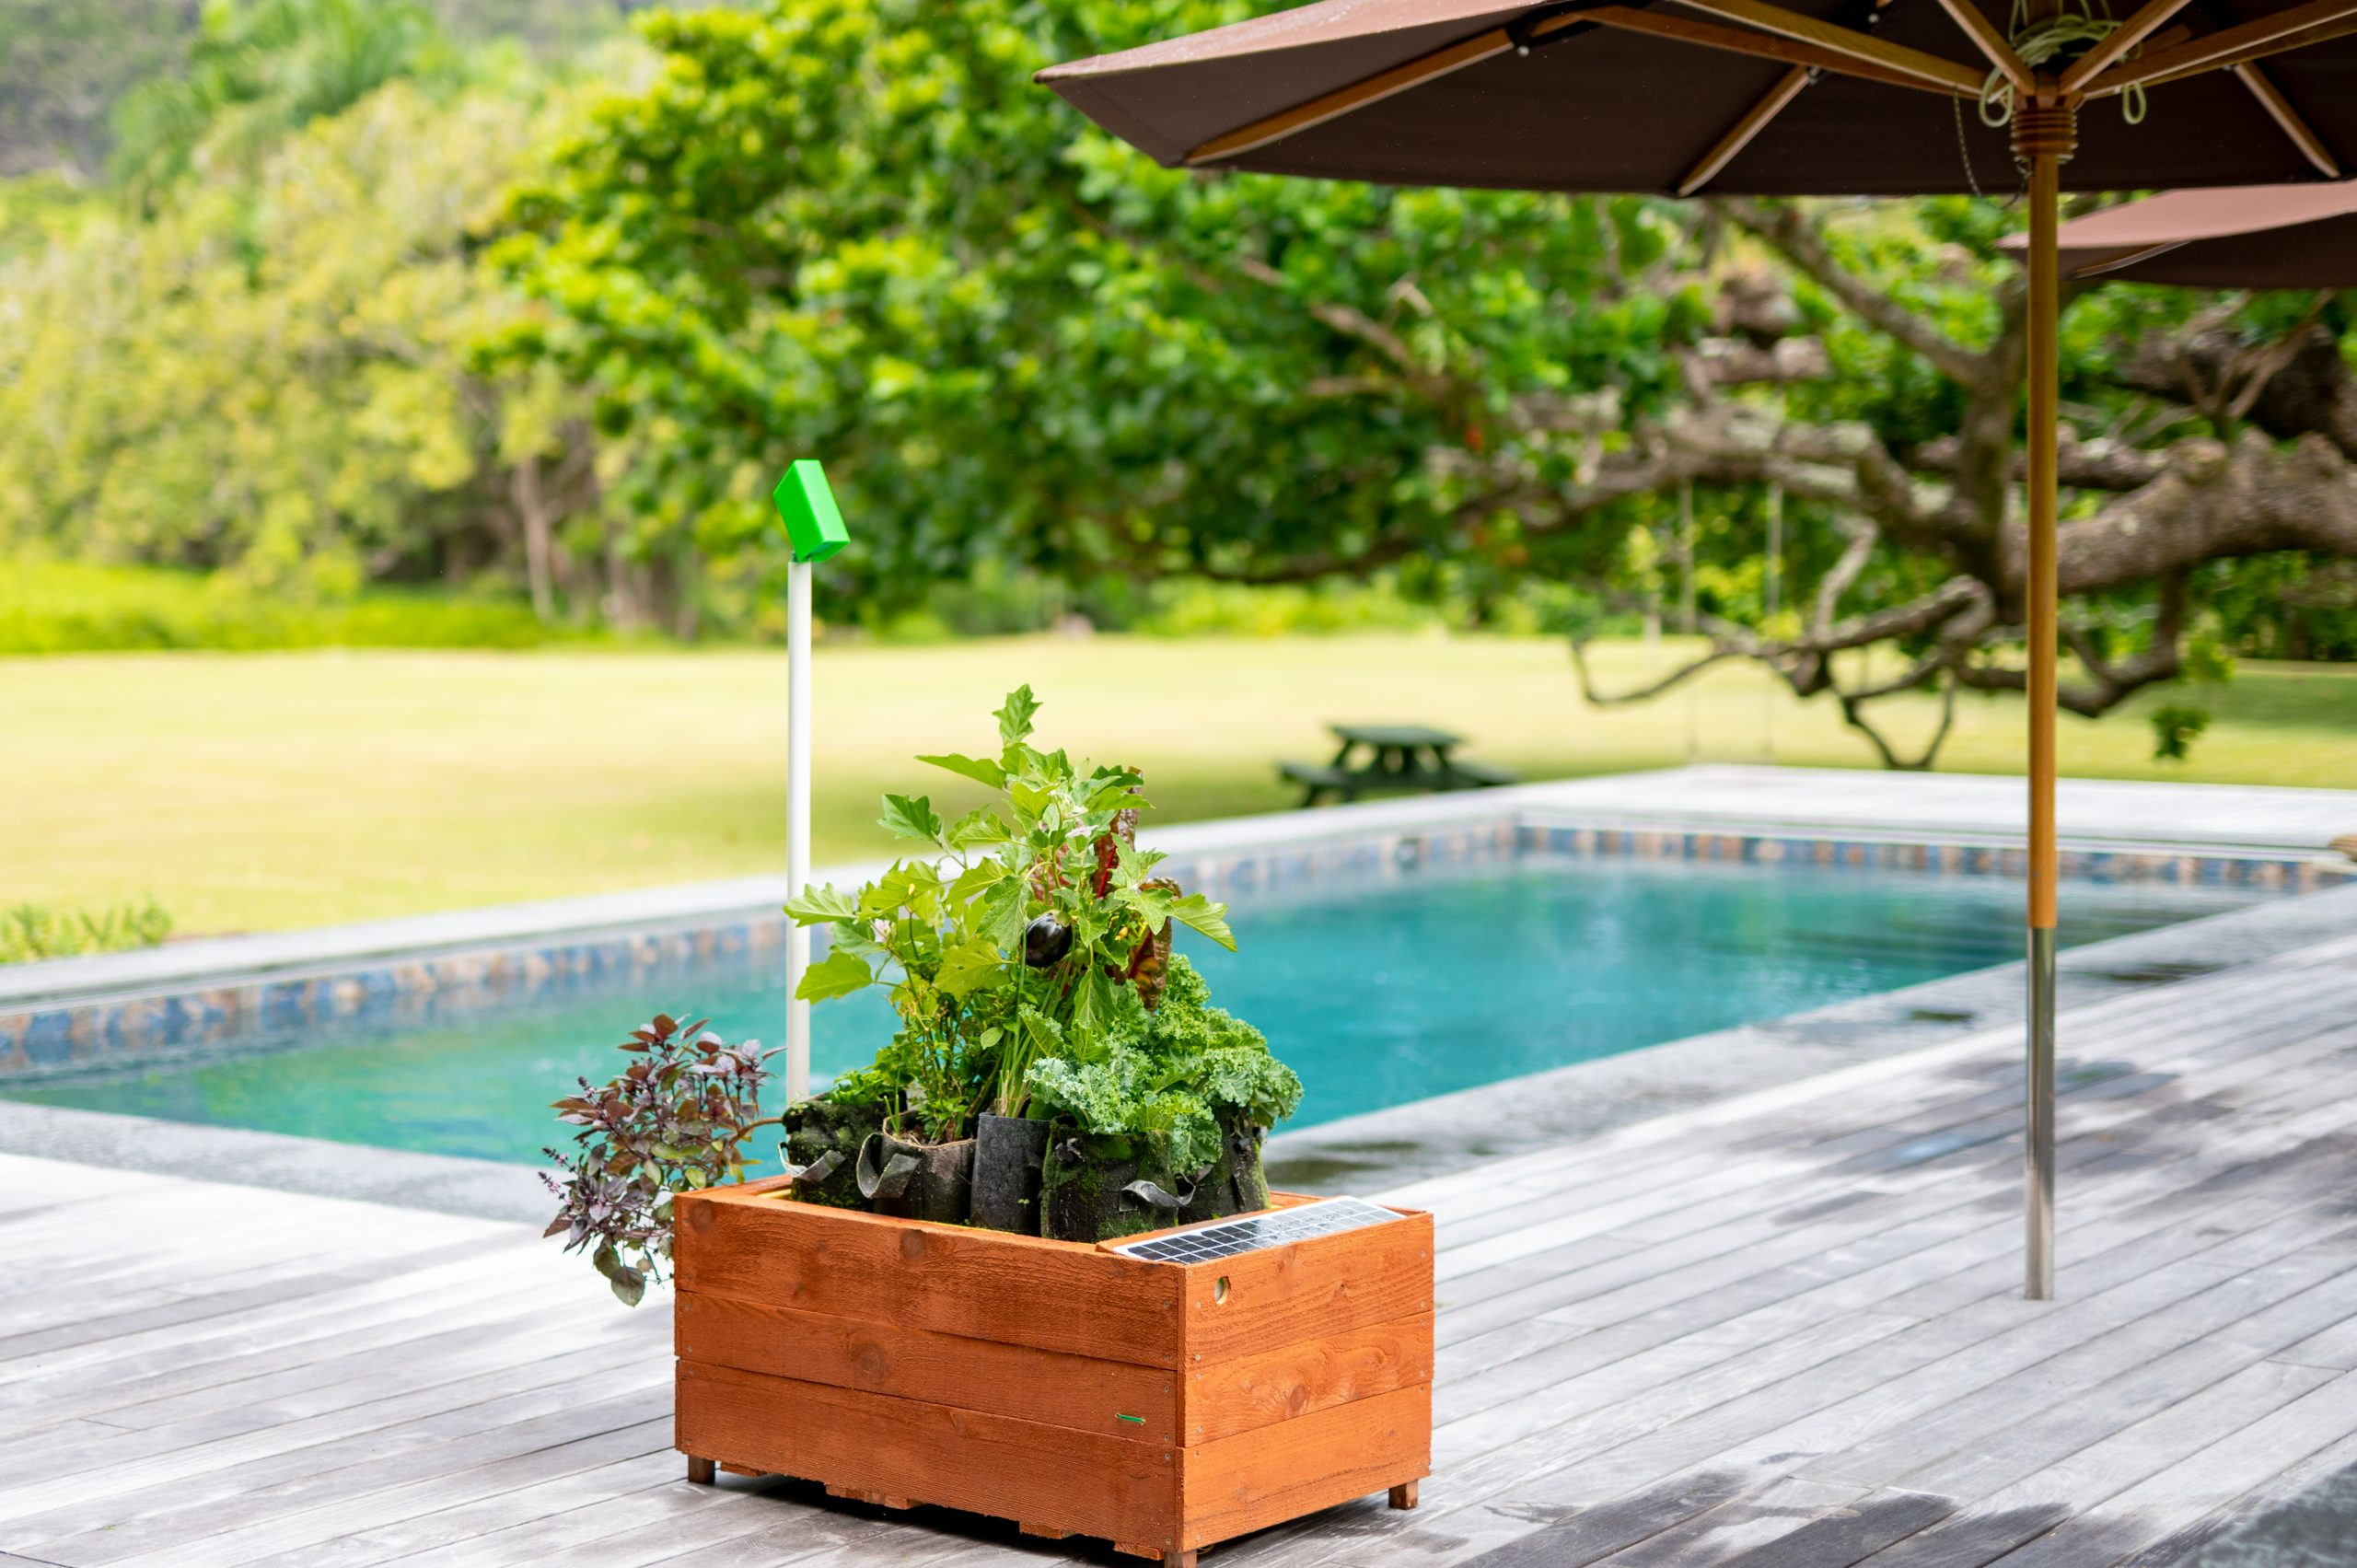 Photo of GrowBot in front of a swimming pool